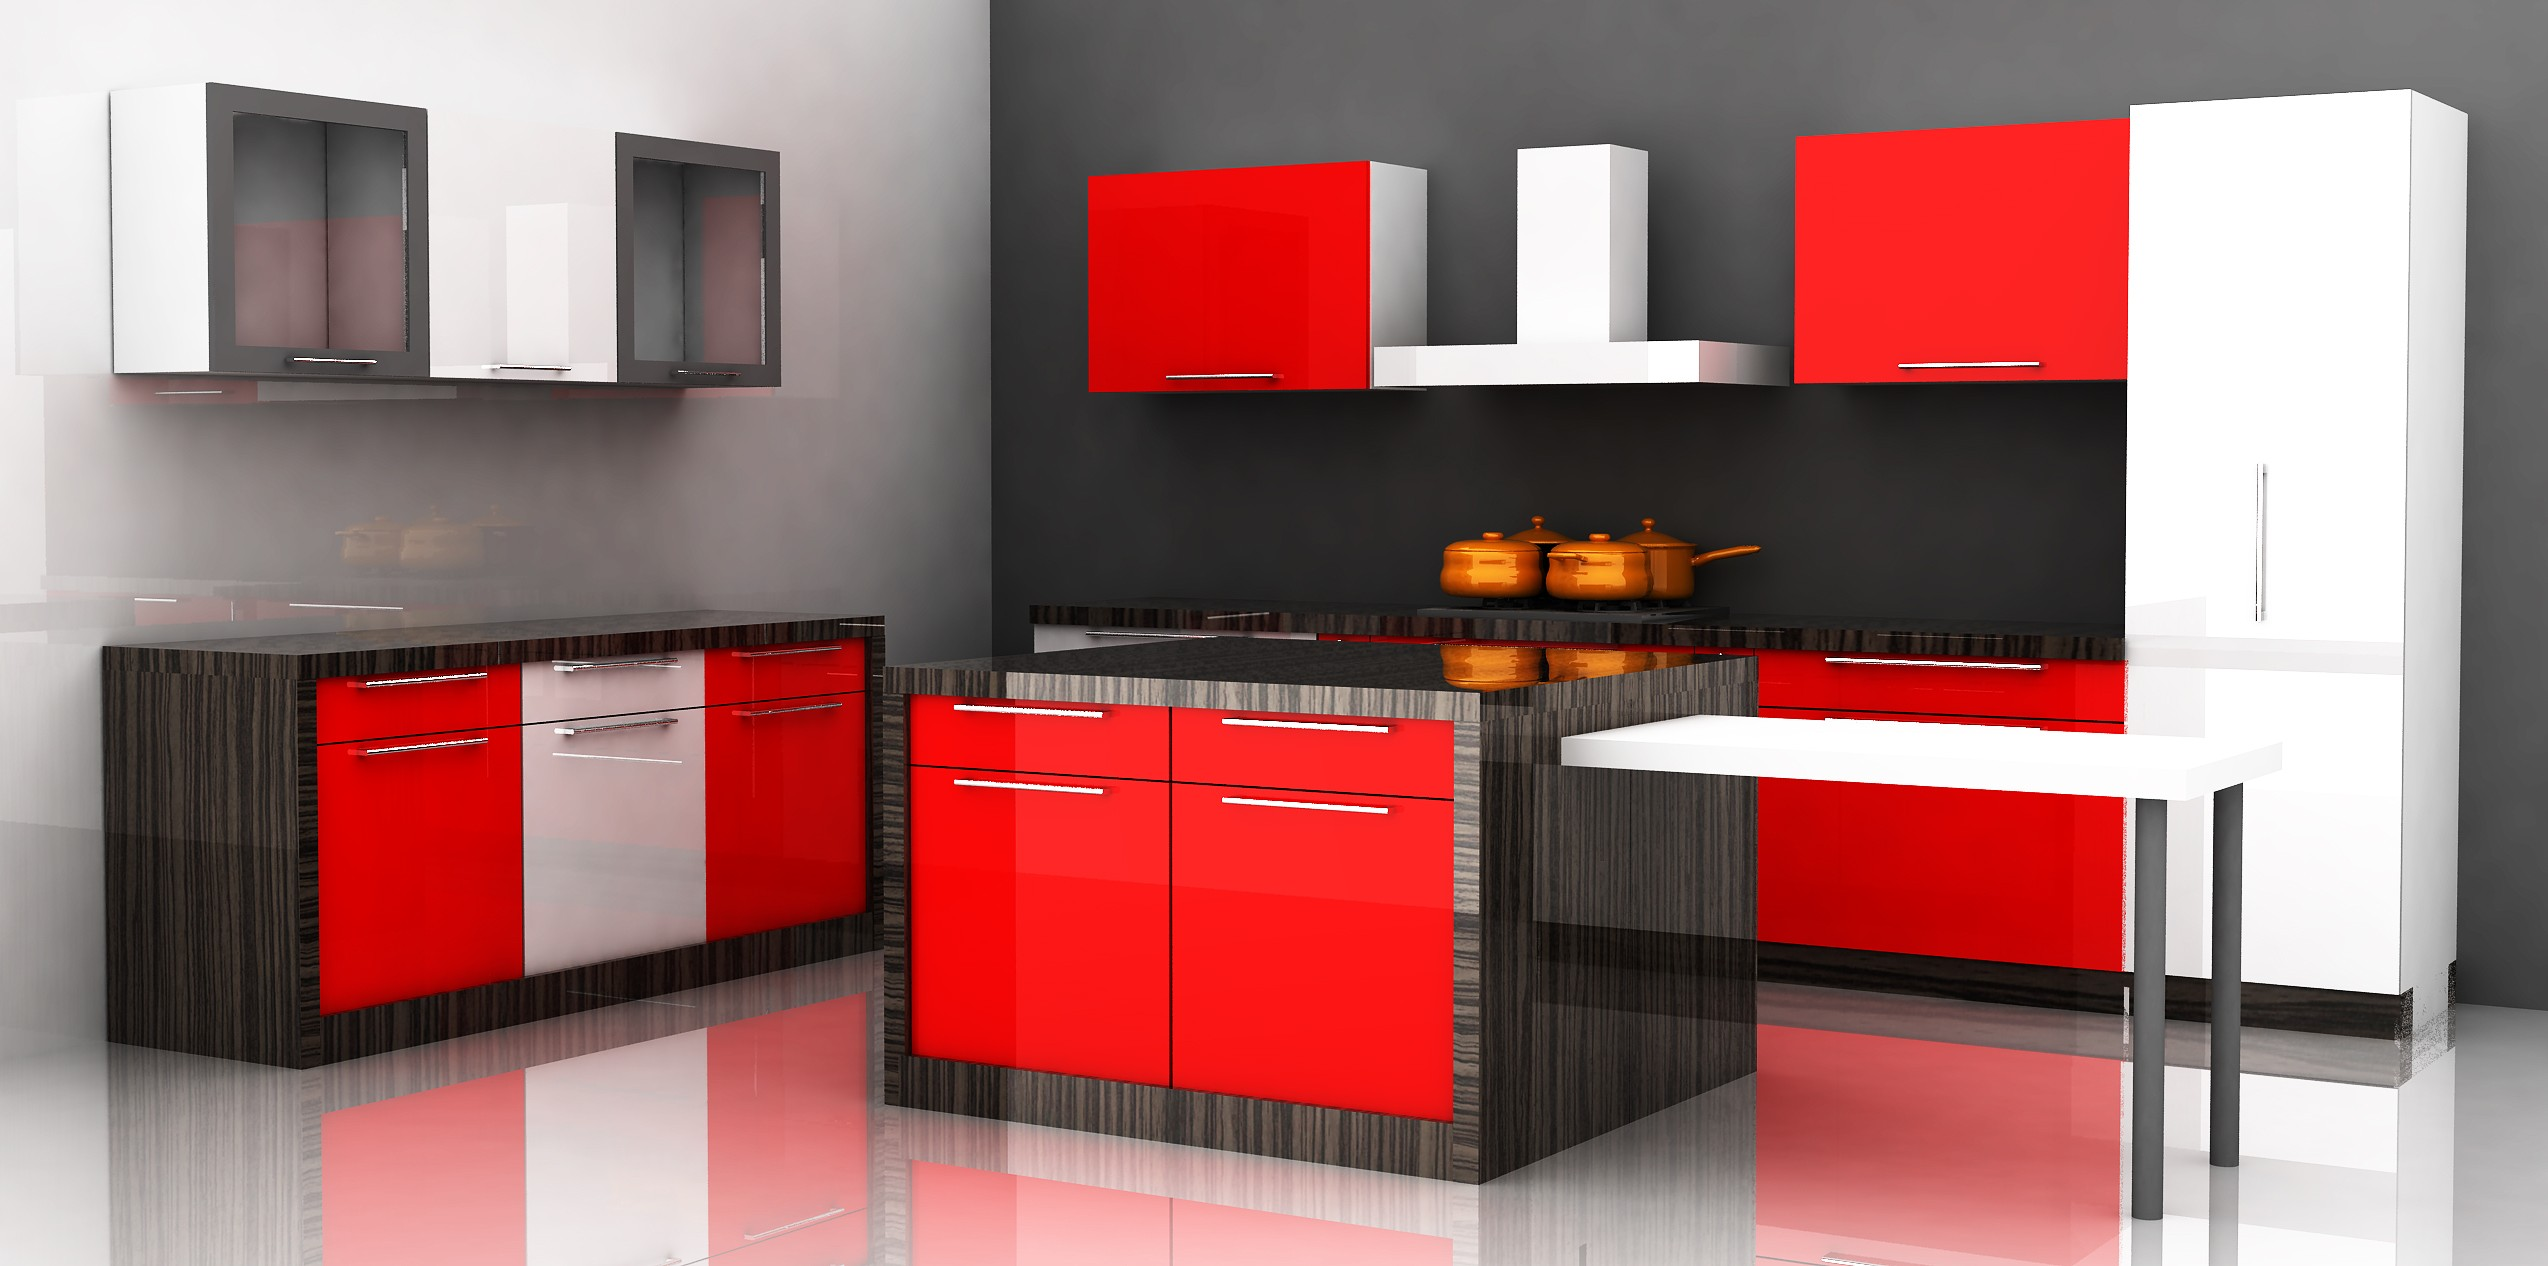 Indian kitchen design for small space - The Red And Black Colored Ply On The Drawers And Storage Looks Damn Cool The Type Of The Modular Kitchen Is Island Modular Kitchen